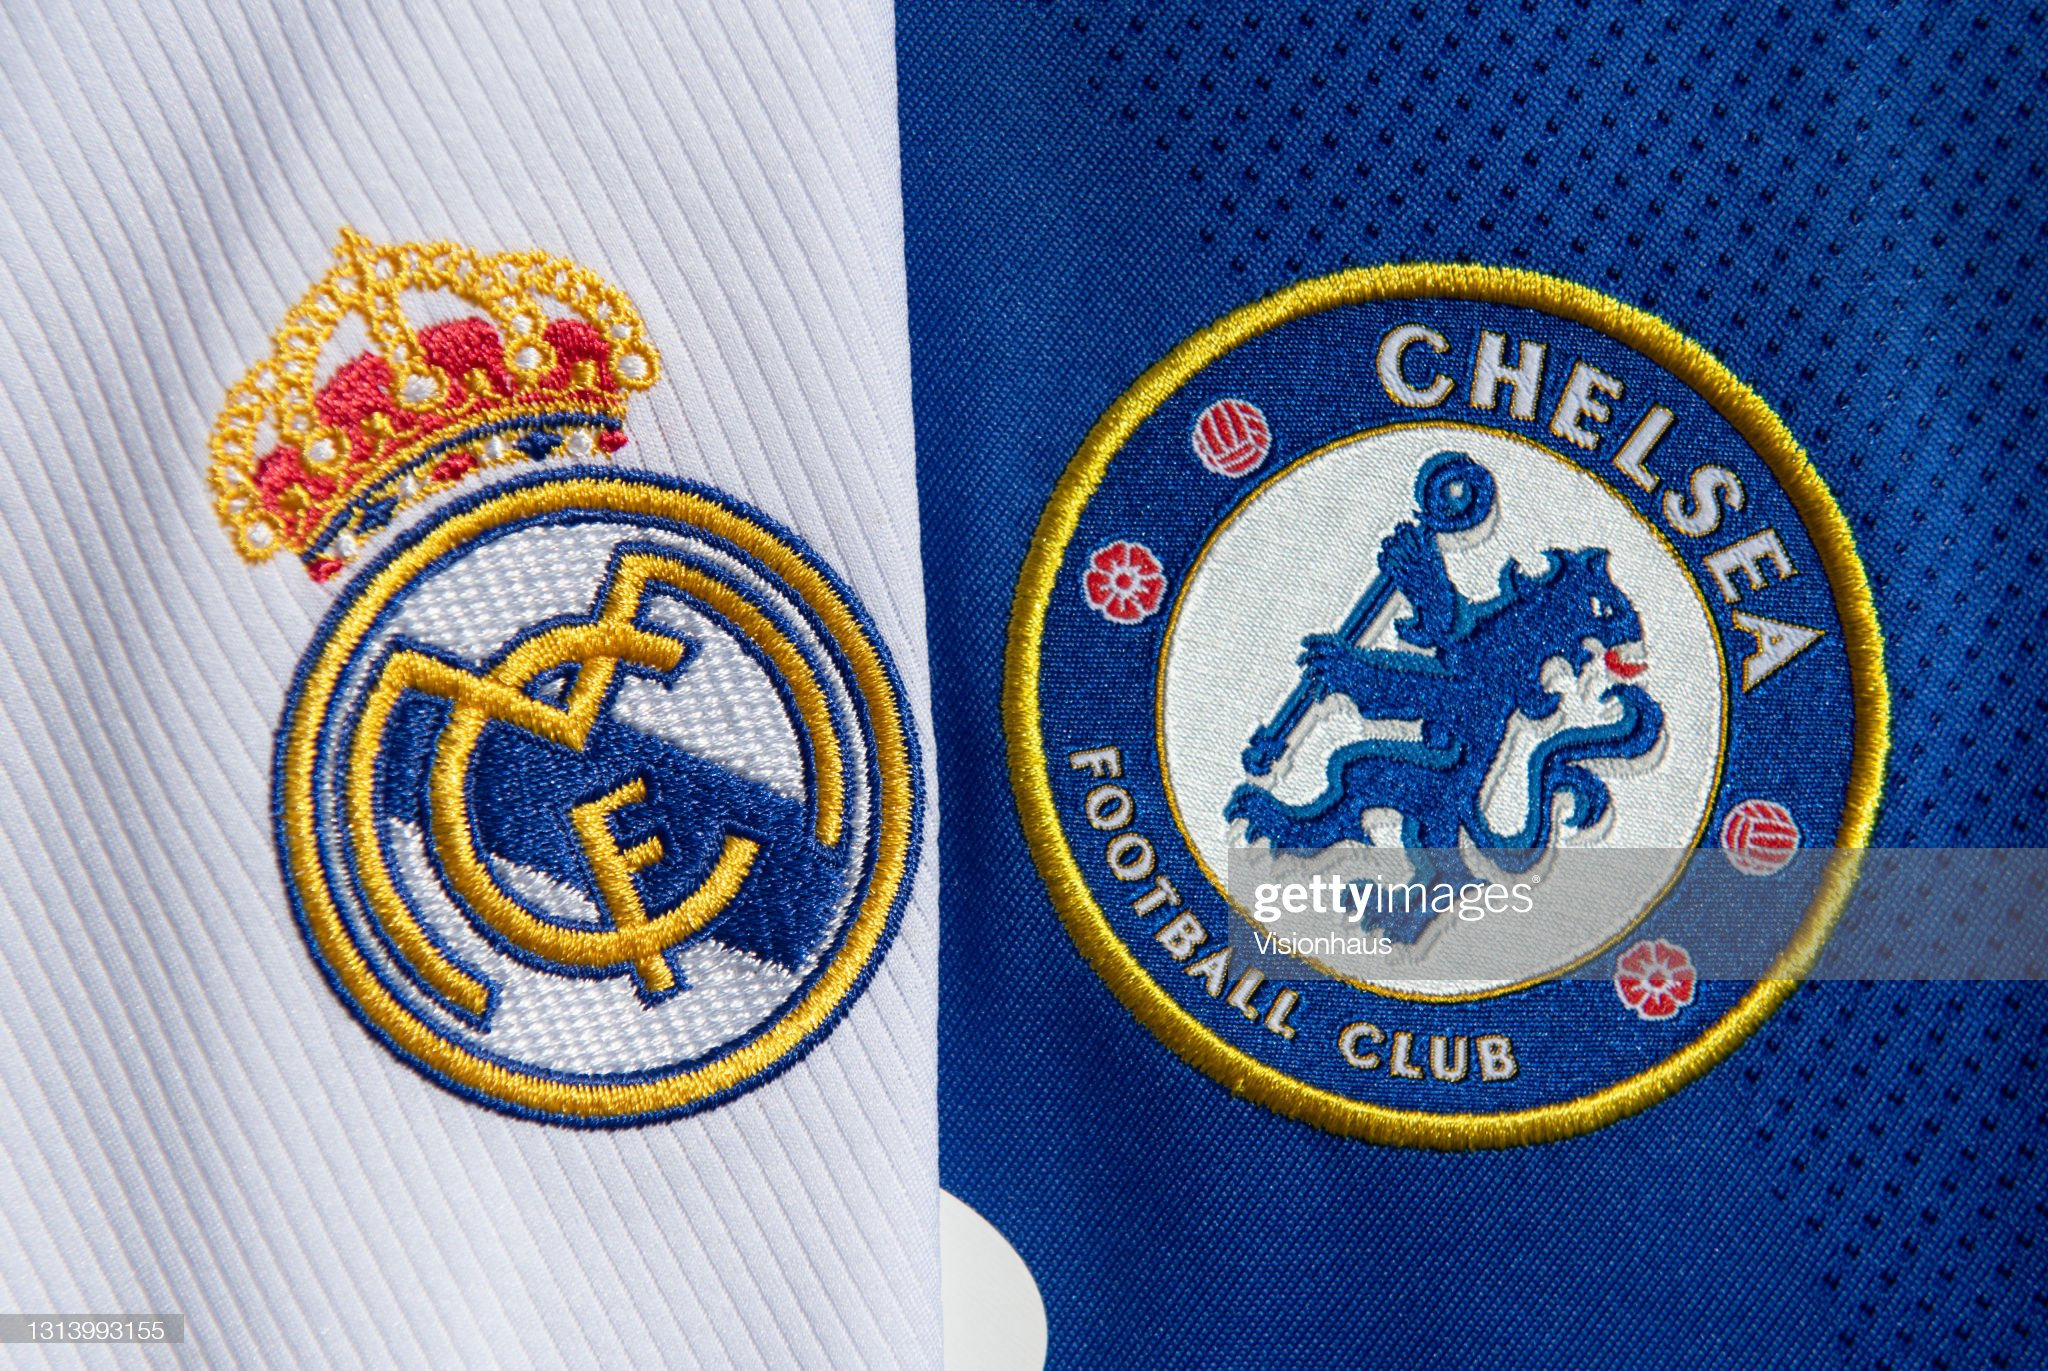 Real Madrid vs Chelsea preview, prediction and odds